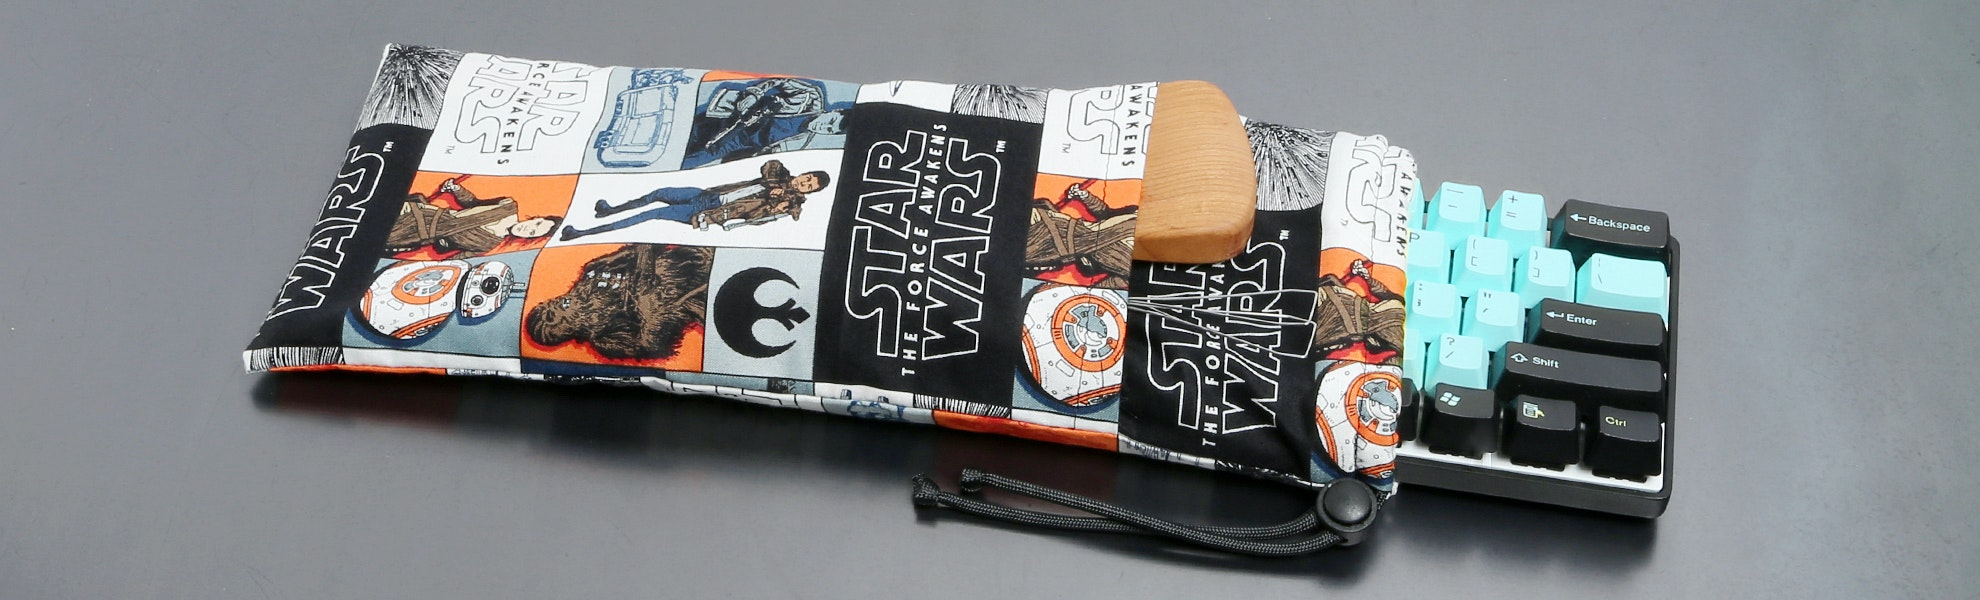 Star Wars Keyboard Soft Cases